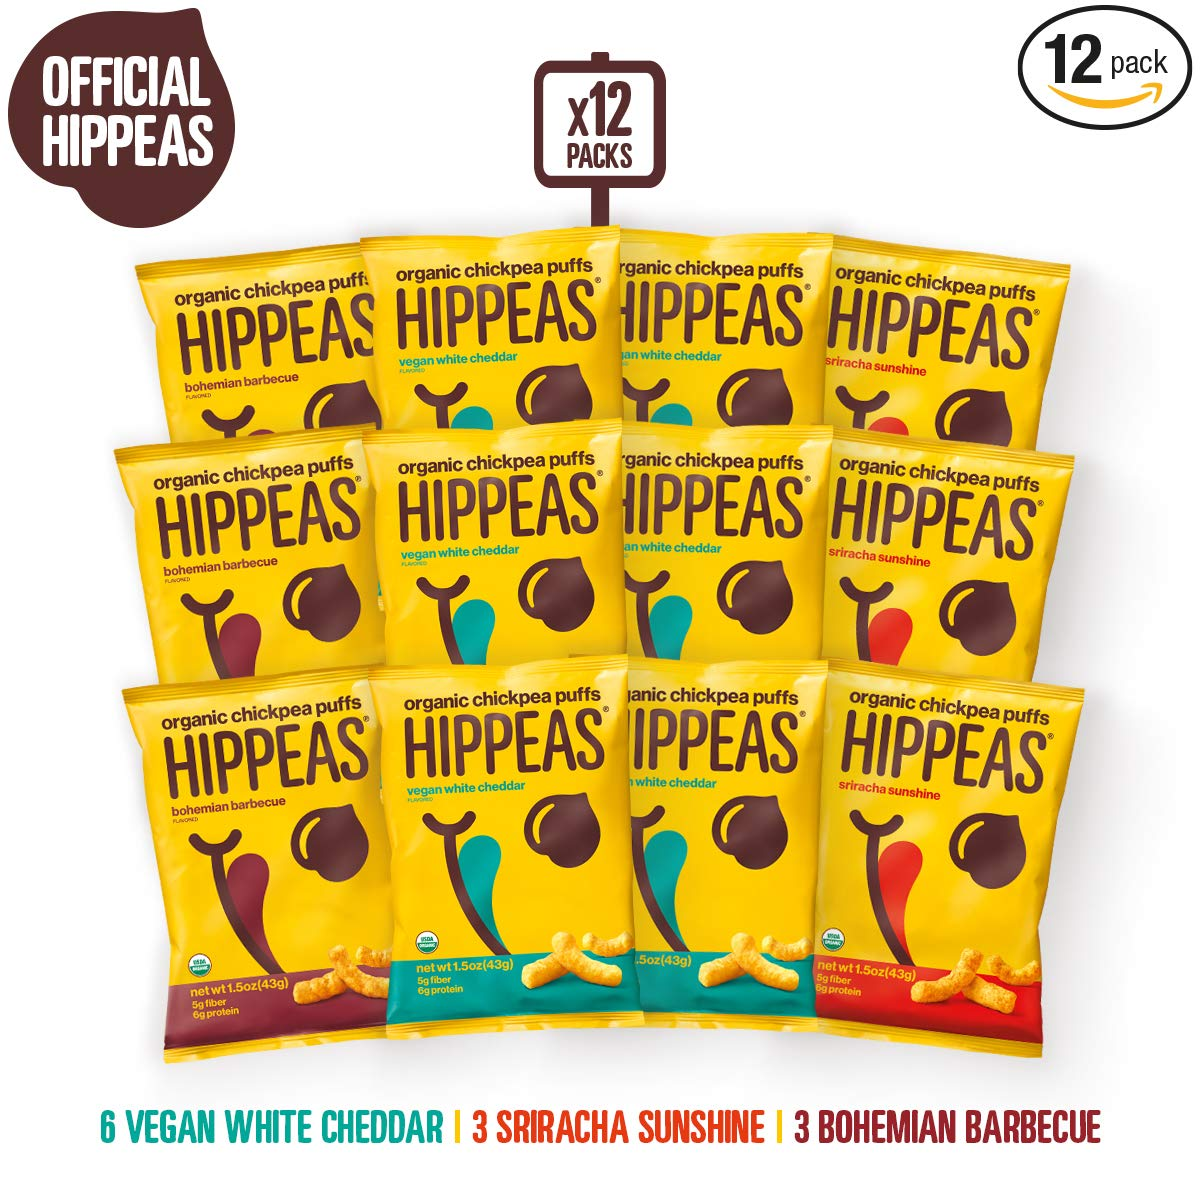 HIPPEAS Organic Chickpea Puffs + Variety Pack | 1.5 ounce, 12 count | Vegan, Gluten-Free, Crunchy, Protein Snacks by Hippeas Organic Chickpea Puffs